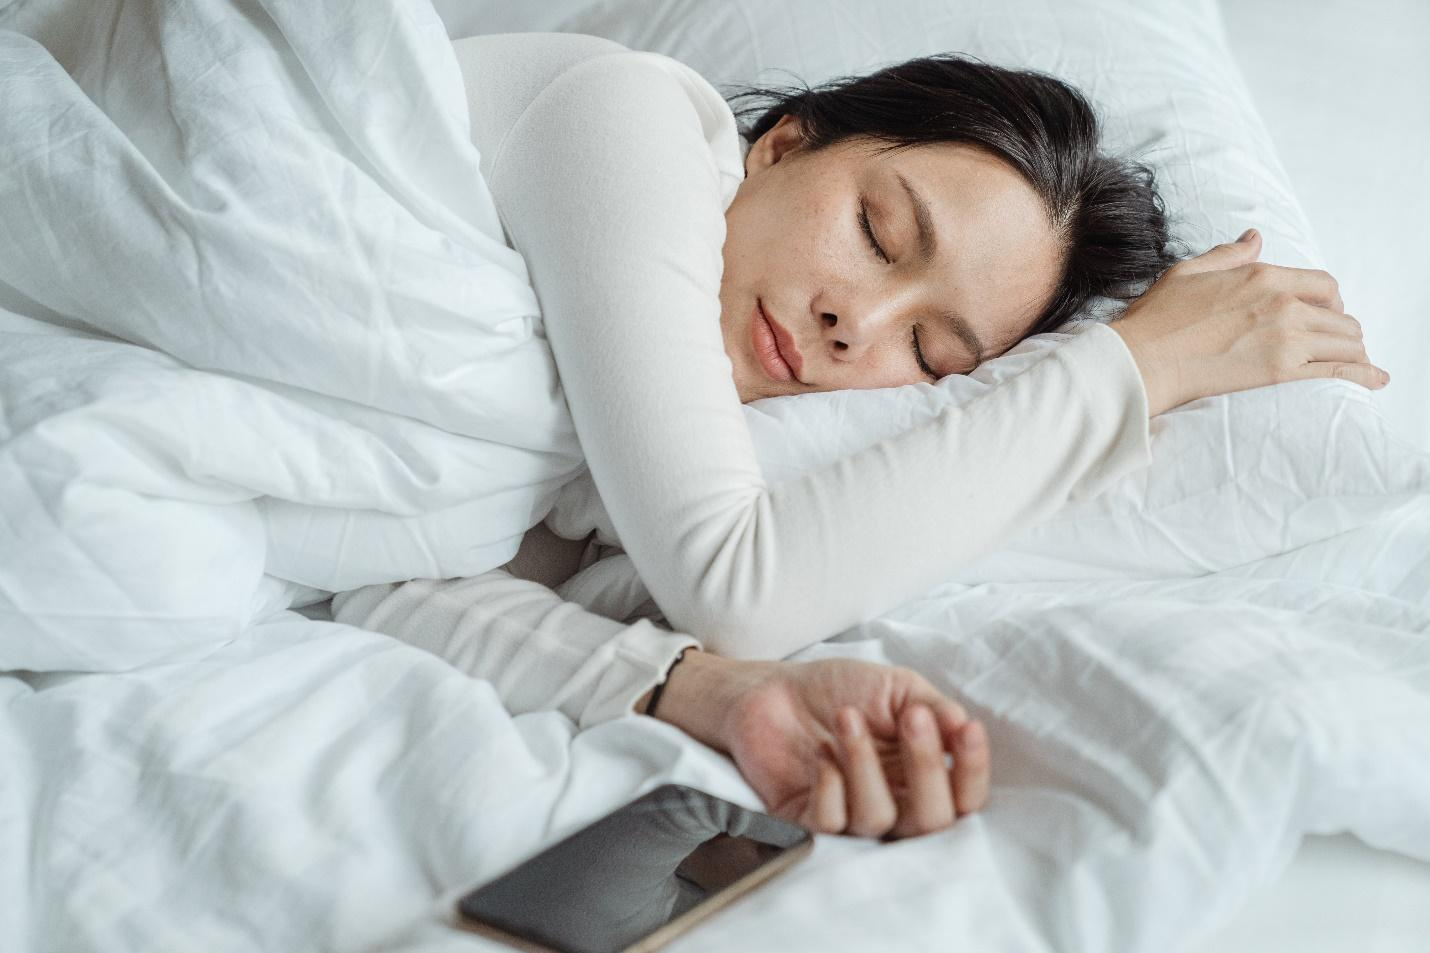 A person sleeping on a bed  Description automatically generated with low confidence